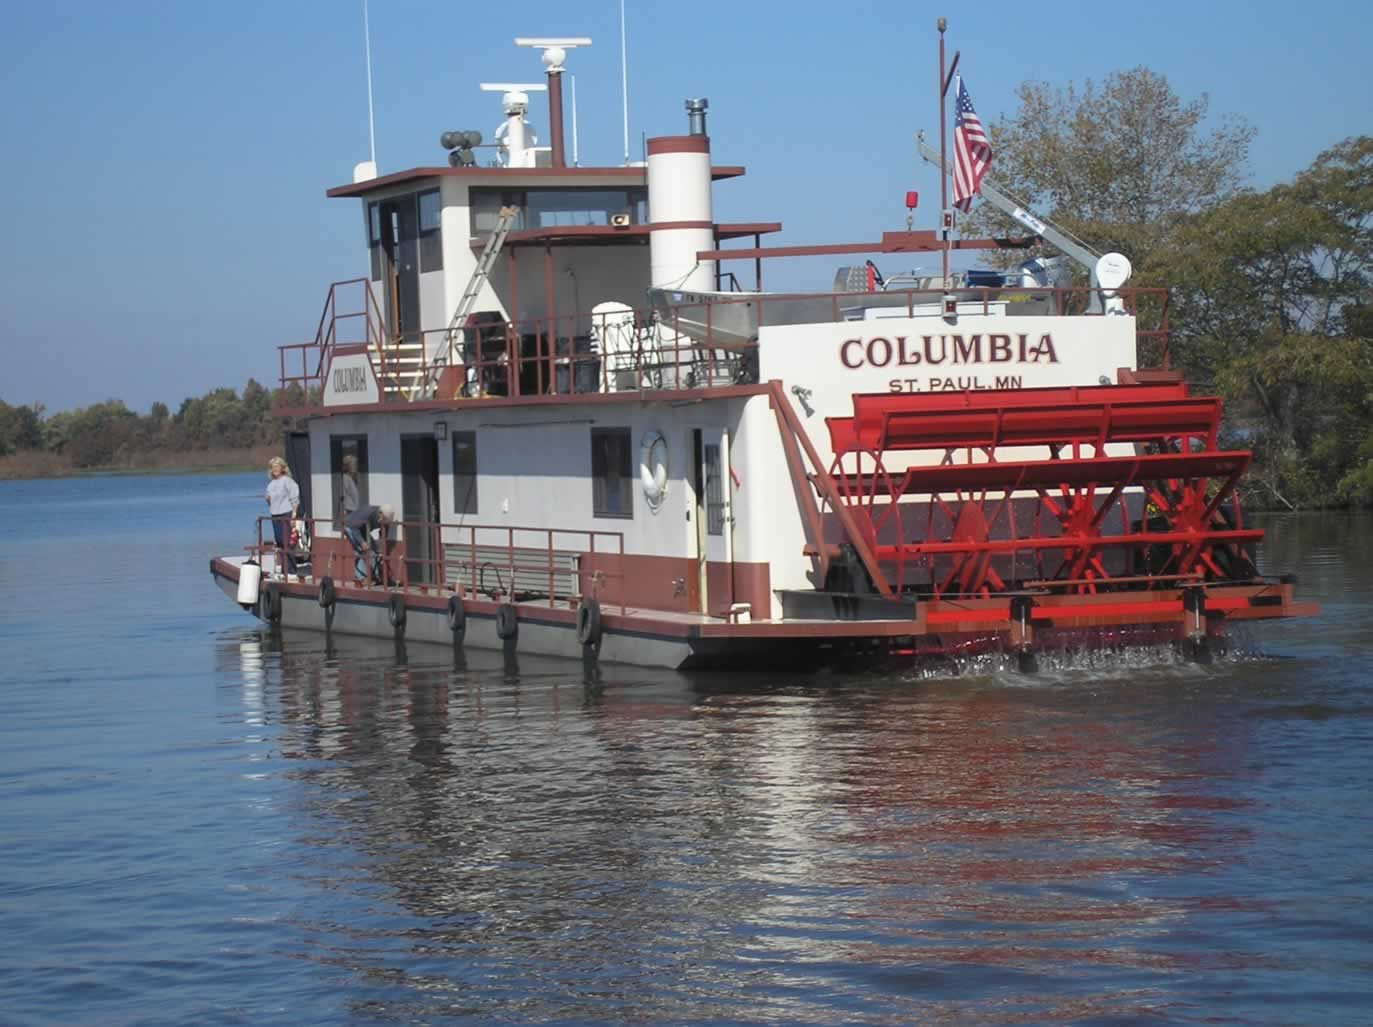 A Paddle Steamer Is Steamship Or Riverboat Powered By Steam Engine That Drives Wheels To Propel The Craft Through Water